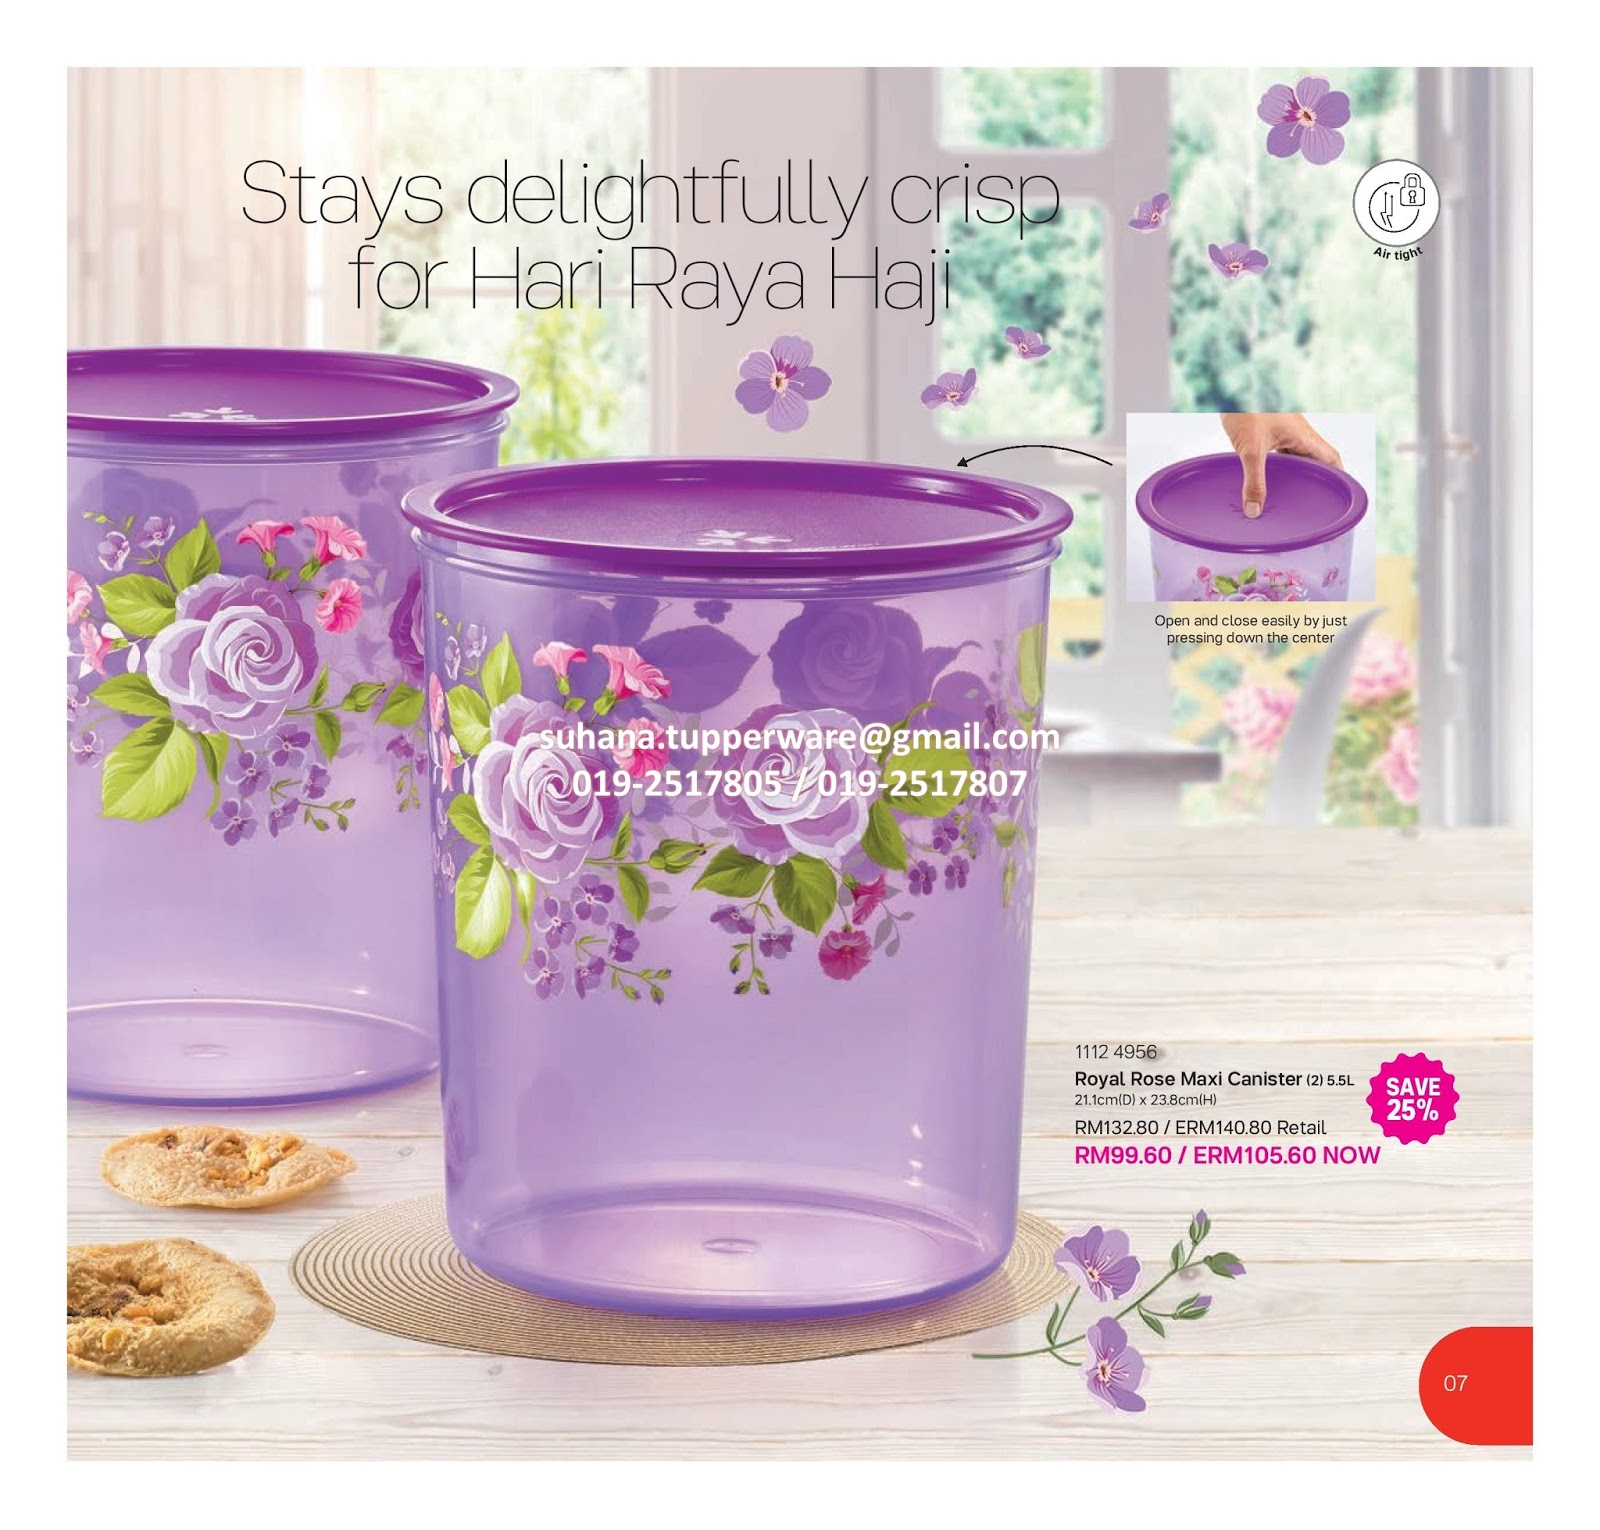 tupperware brands malaysia online catalogue collection business opportunity august 2016. Black Bedroom Furniture Sets. Home Design Ideas